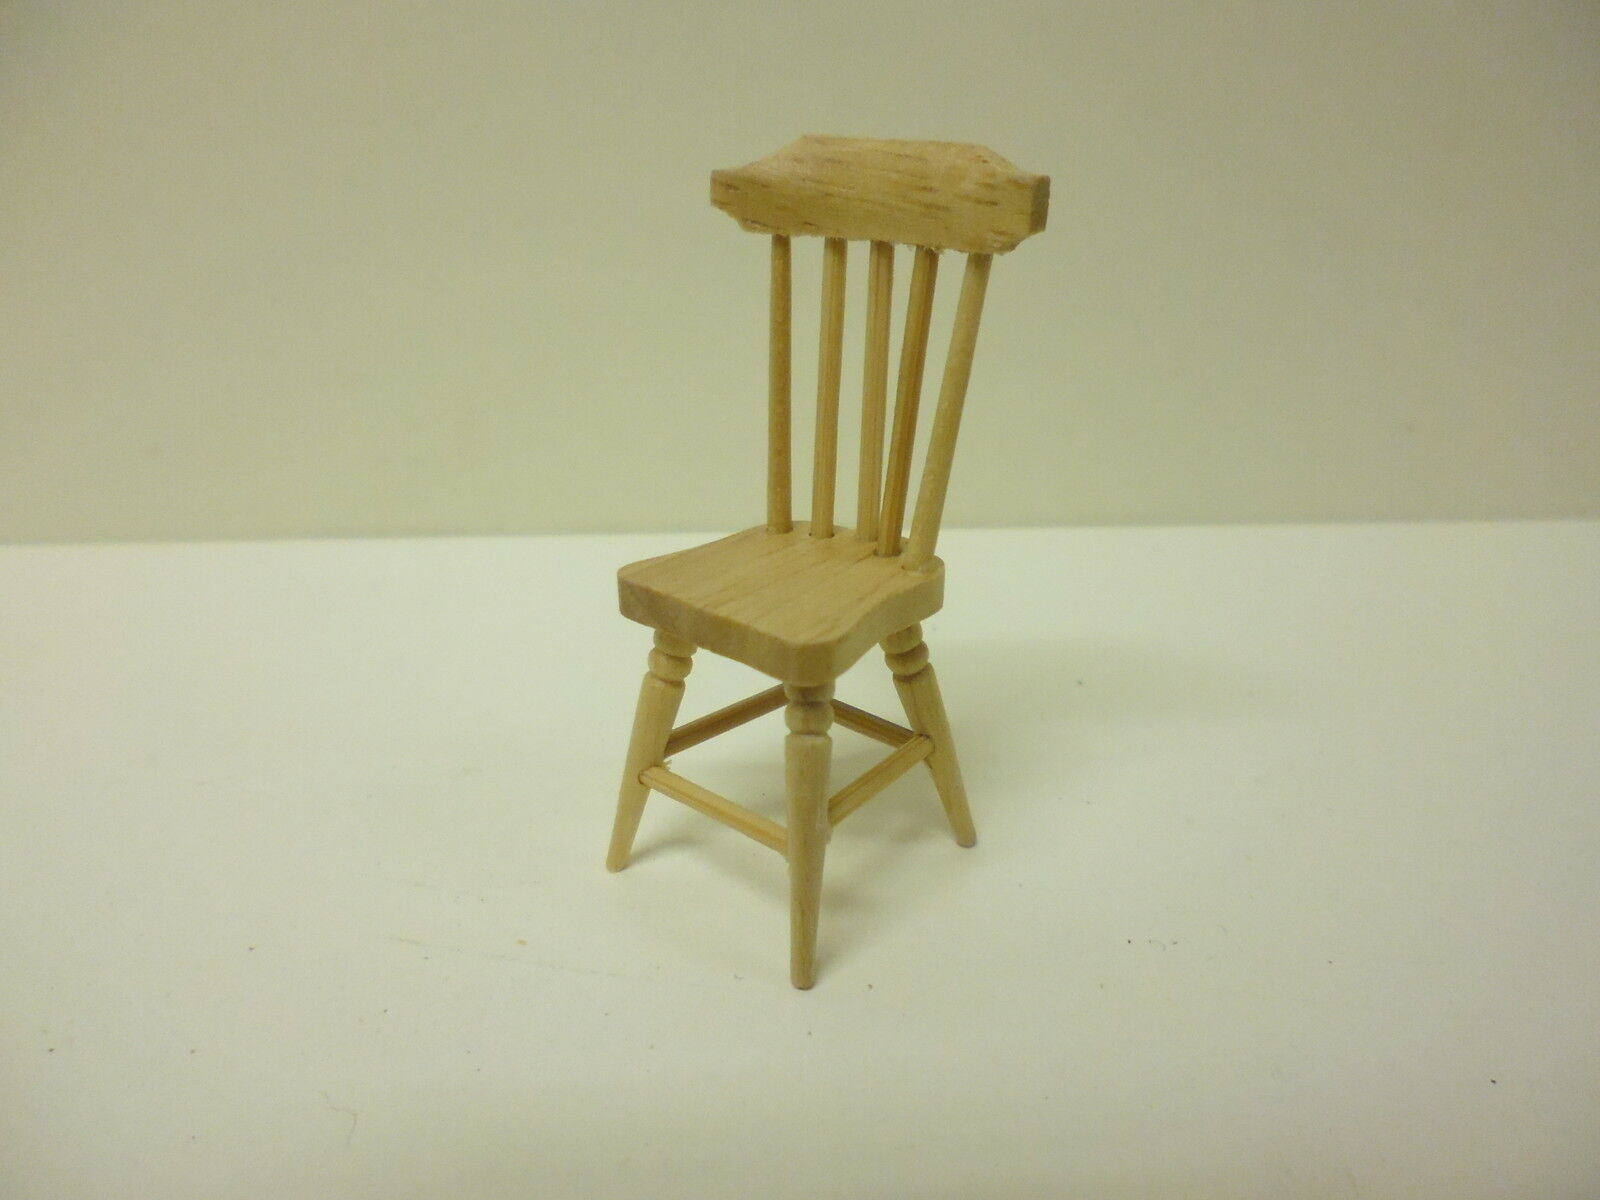 pine kitchen chairs ireland the silver chair chapter summaries quality 1 24th scale dolls house furniture